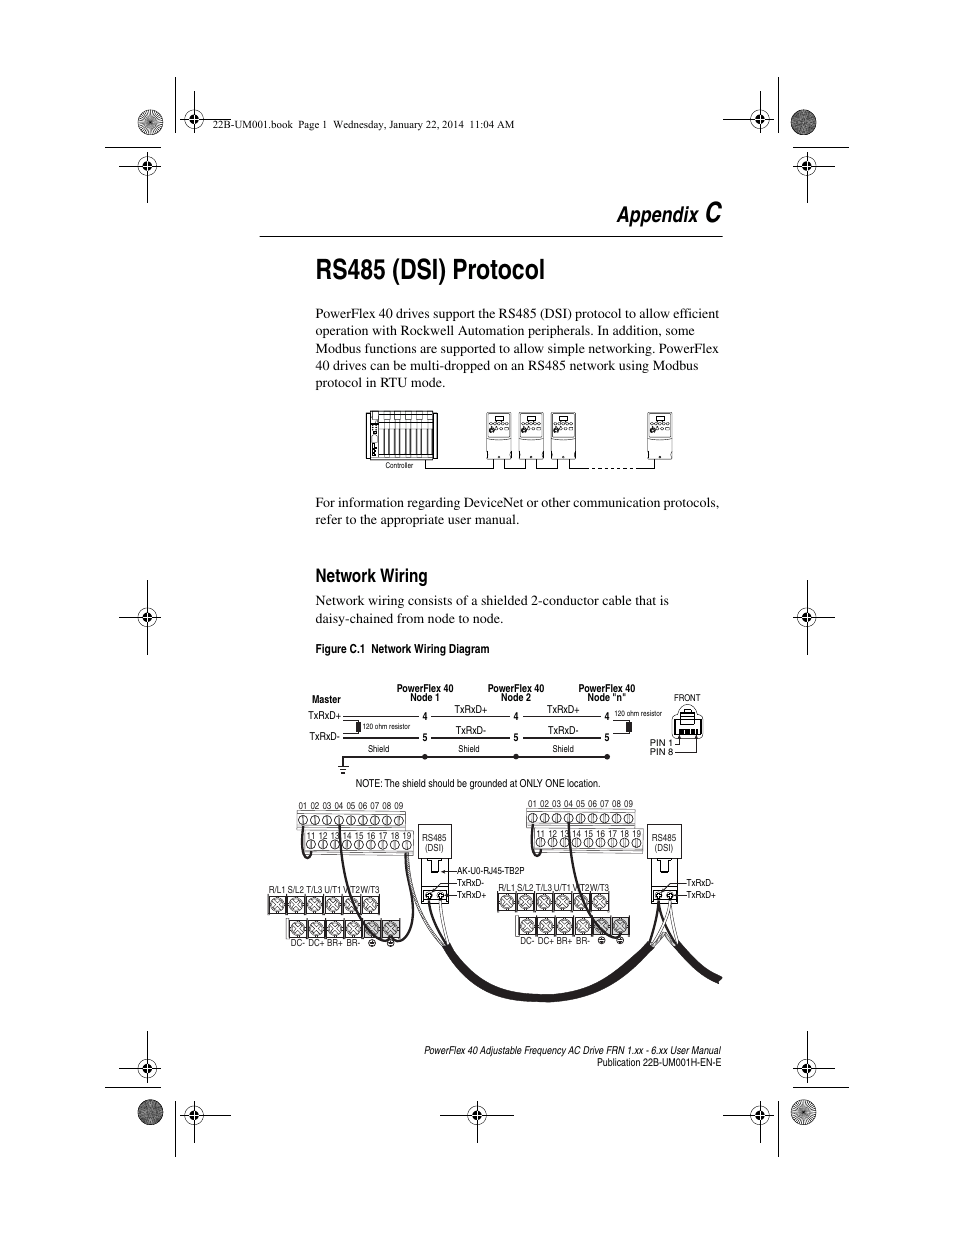 hight resolution of appendix c rs485 dsi protocol network wiring rockwell automation 22b powerflex 40 frn 1 xx 6 xx user manual page 125 160